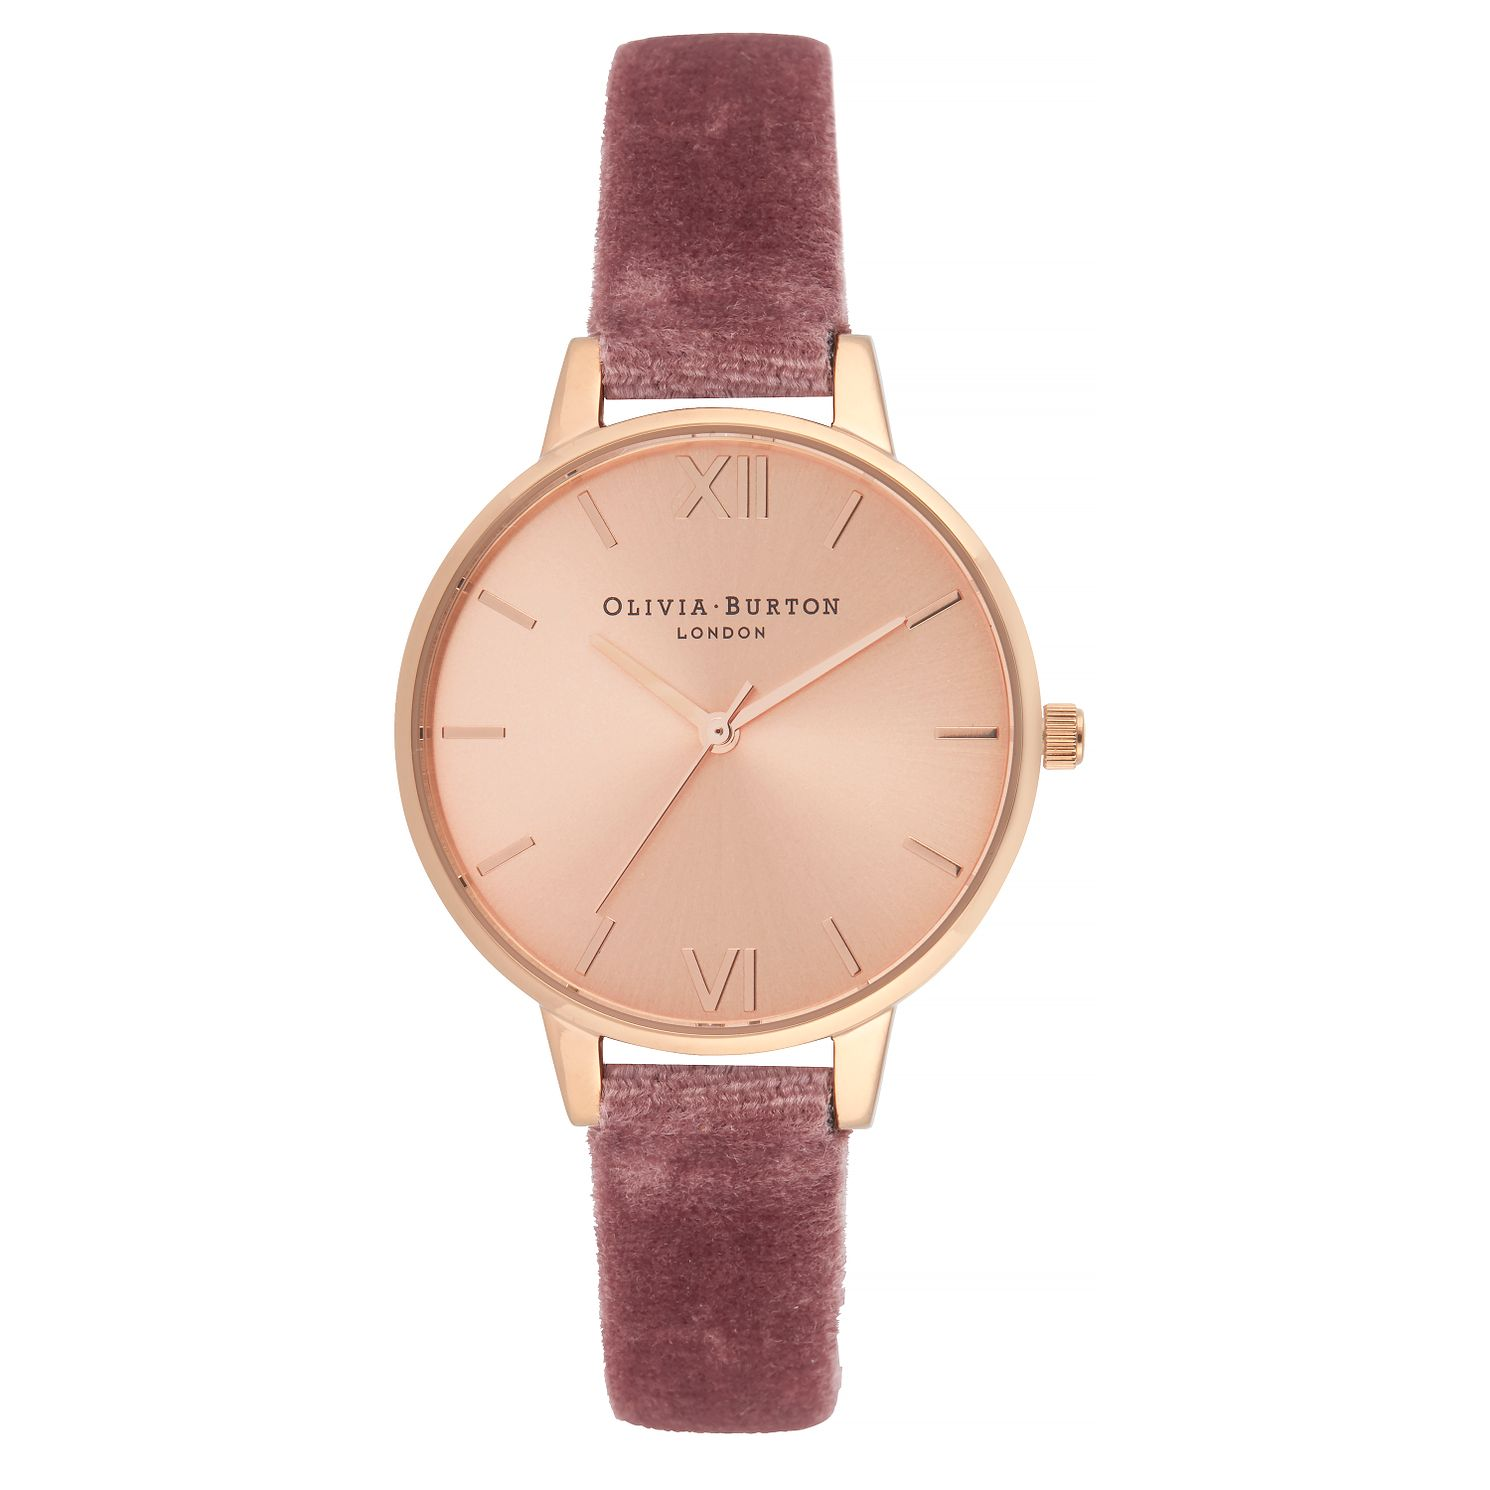 Olivia Burton Ladies' Sunray Dial Rose Velvet Strap Watch - Product number 9405968